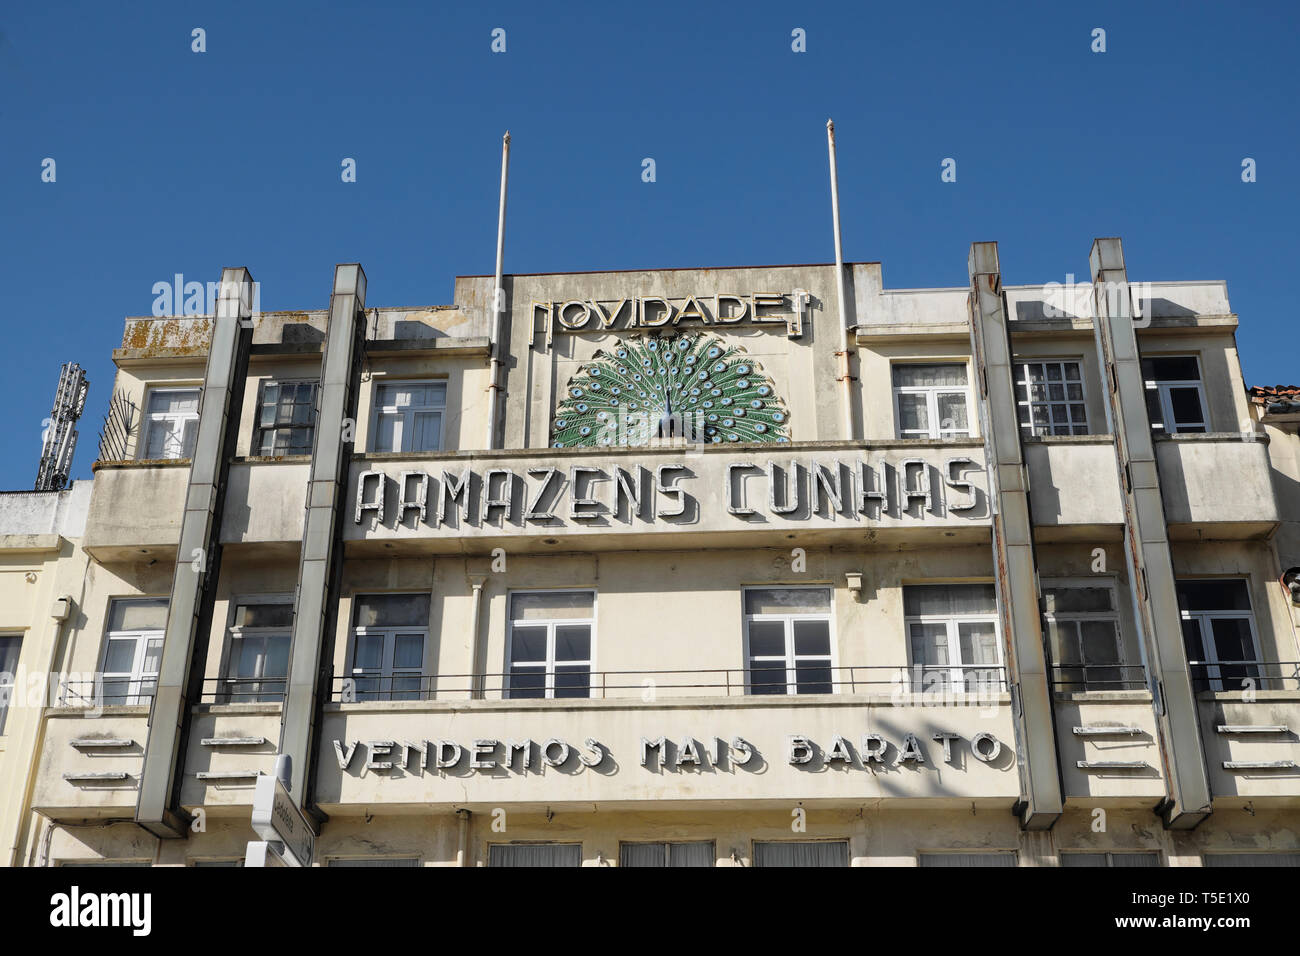 Exterior facade of Armazens Cunhas department store building in Praça de Gomes Teixeira Square in the city of Porto Portugal Europe KATHY DEWITT - Stock Image